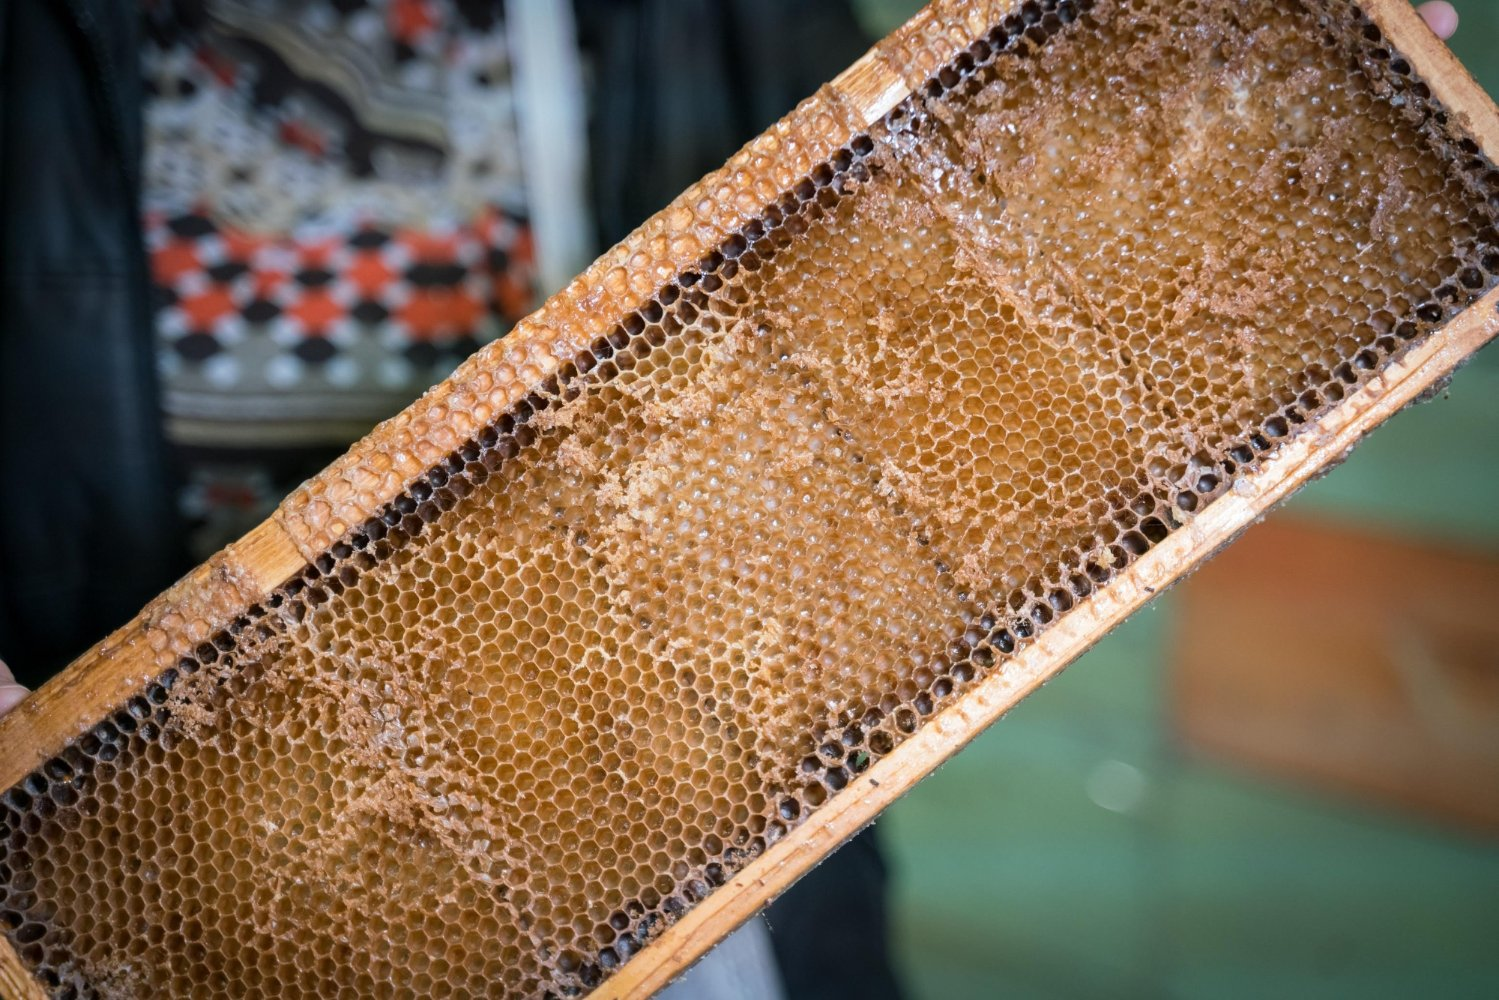 Beehive used for the Lunigiana PDO honey production